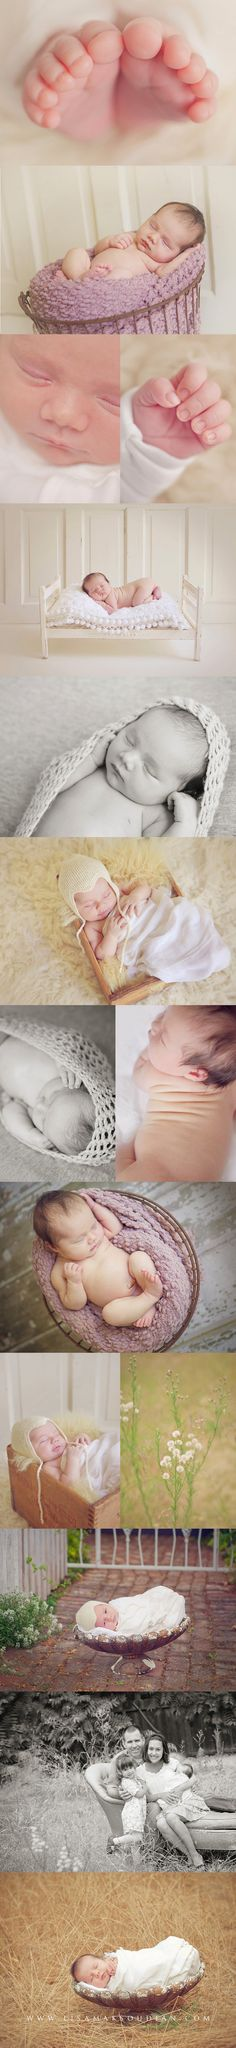 This is done so classy i like it a lot!!!!!!!            Need help with newborn photo shoot setup? These are perfect! #newborn #baby #babyface #child #family #diy #photography